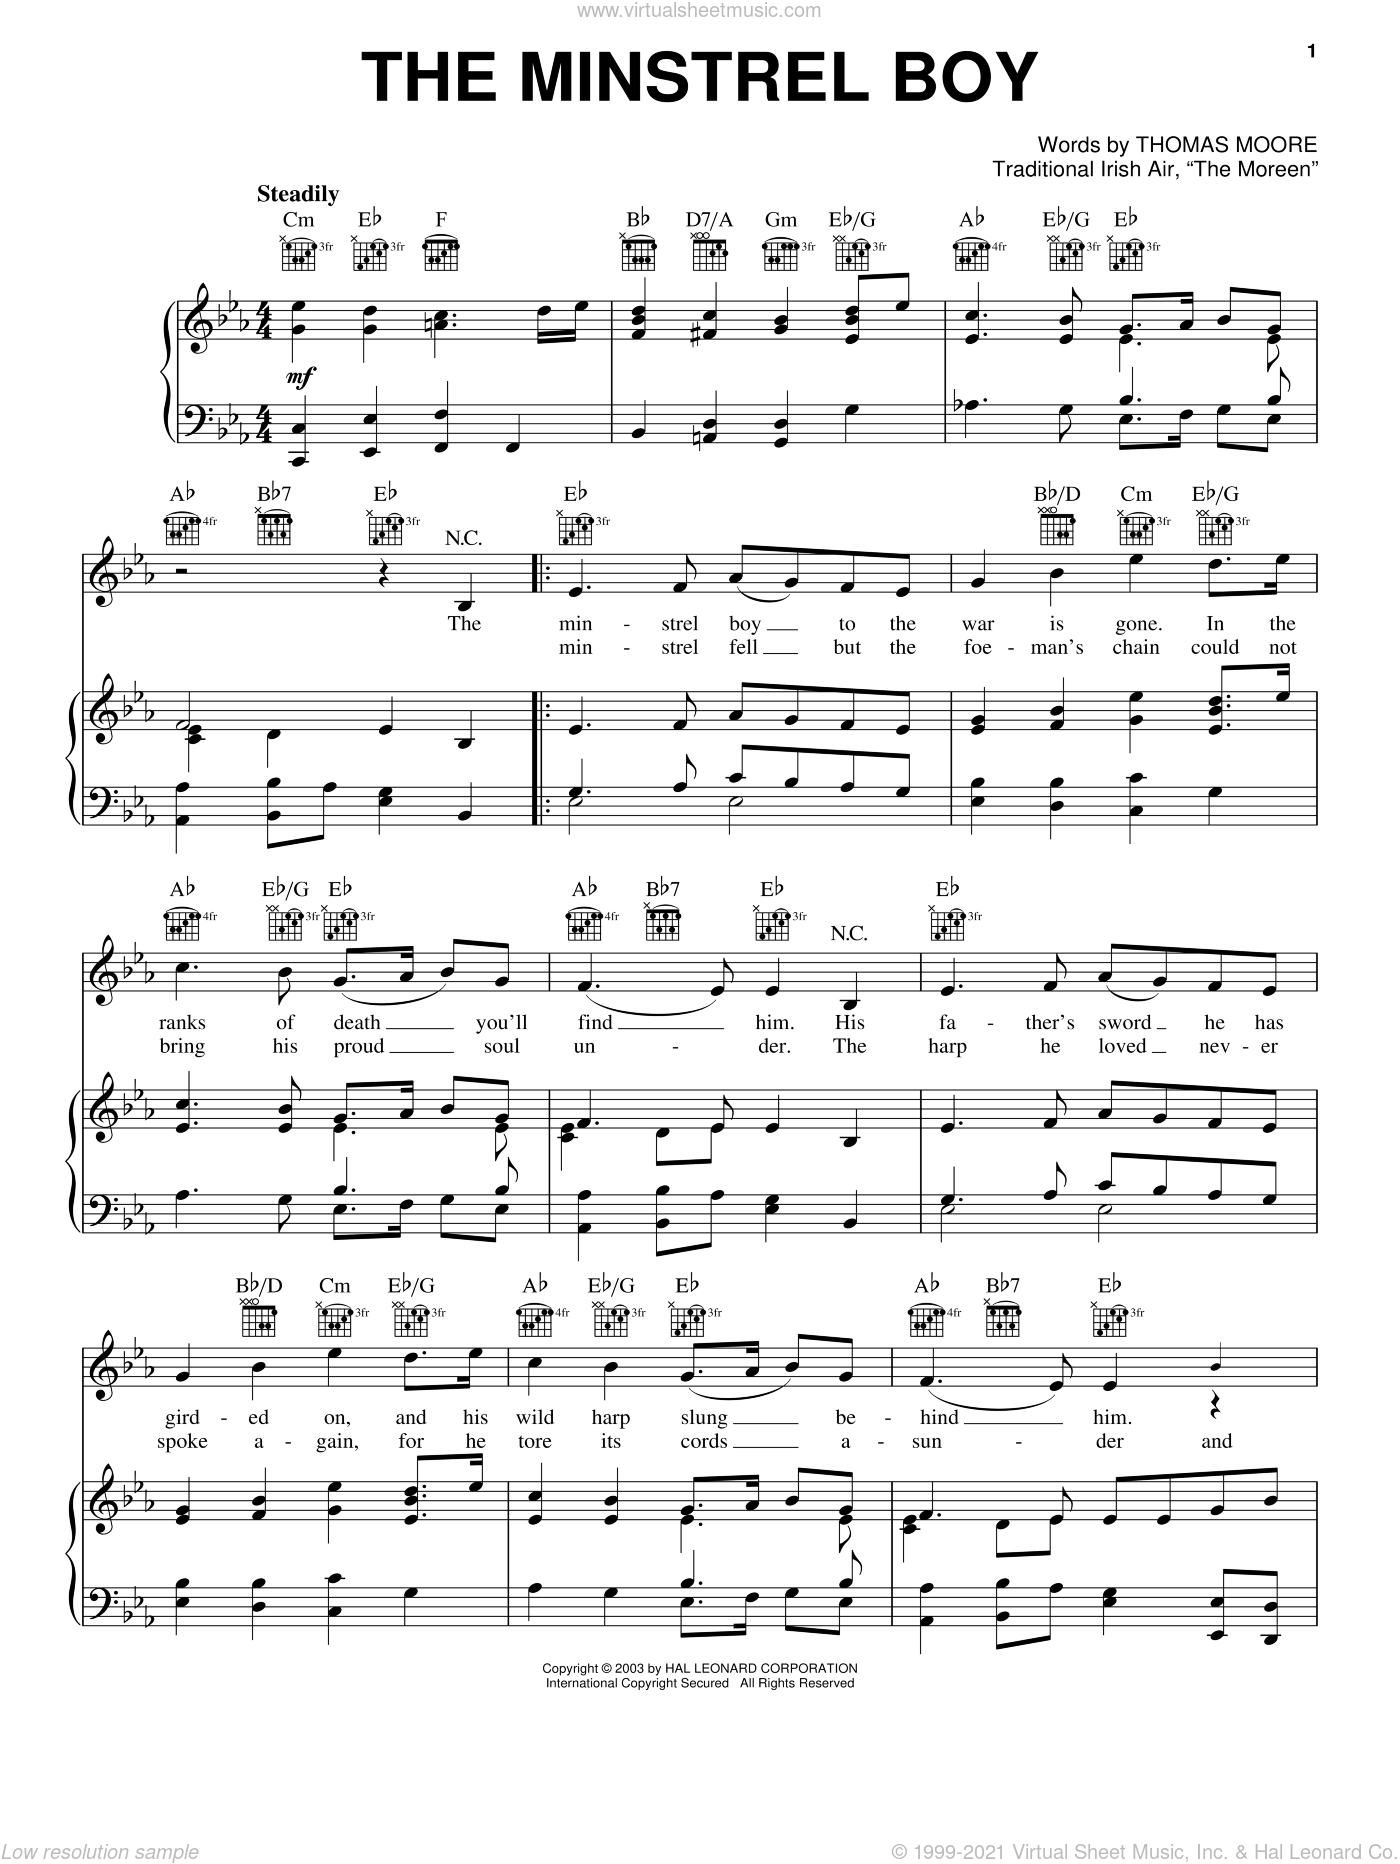 Minstrel Boy sheet music for voice, piano or guitar, intermediate skill level